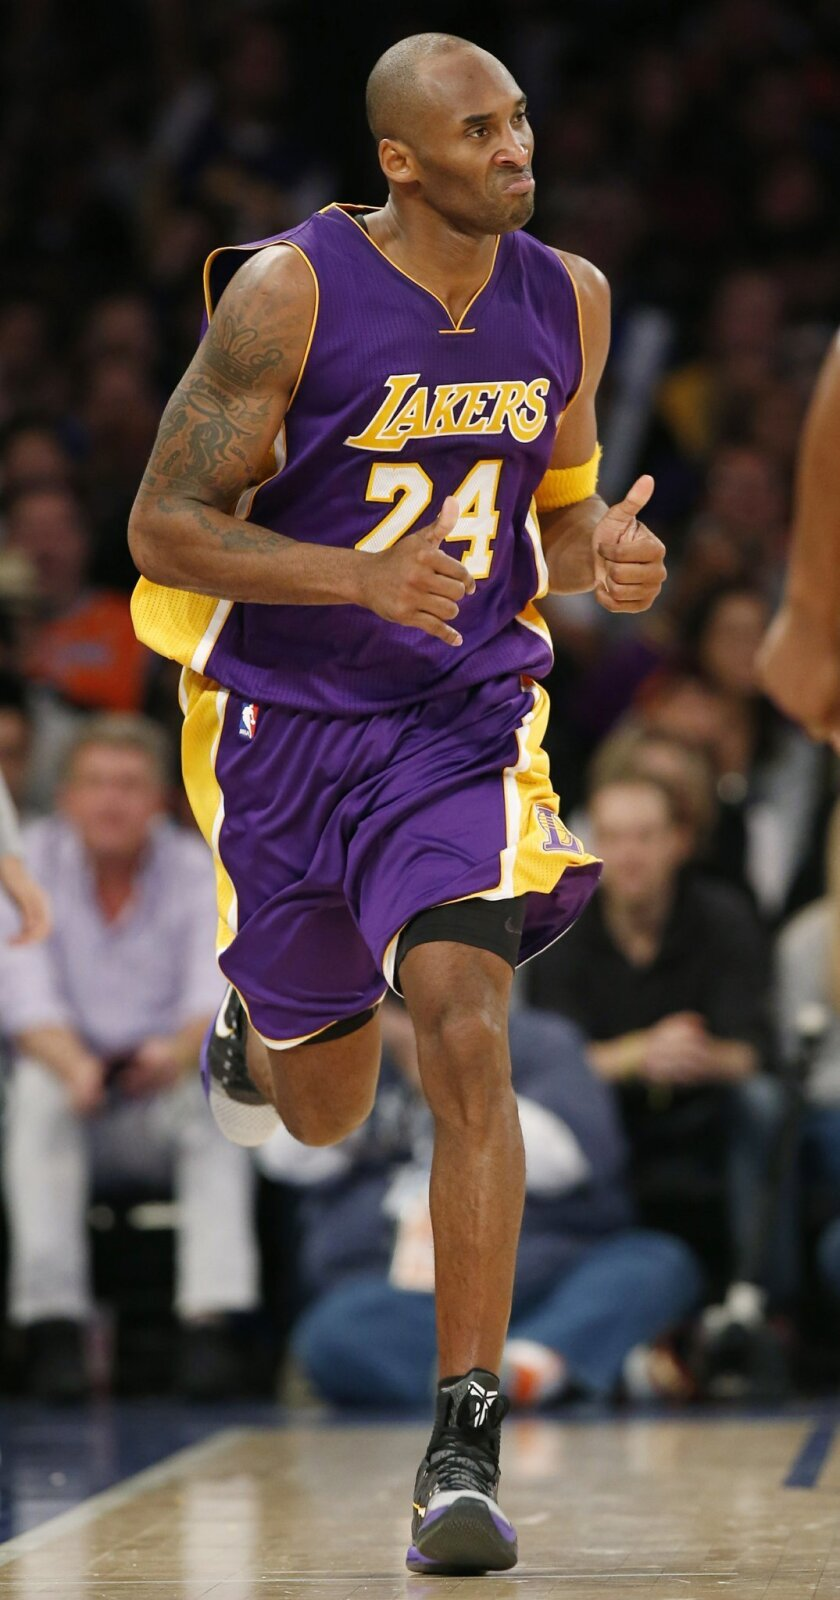 Los Angeles Lakers forward Kobe Bryant runs down court after scoring in the second half of an NBA basketball game against the New York Knicks at Madison Square Garden in New York, Sunday, Nov. 8, 2015. The Knicks won 99-95. (AP Photo/Kathy Willens)